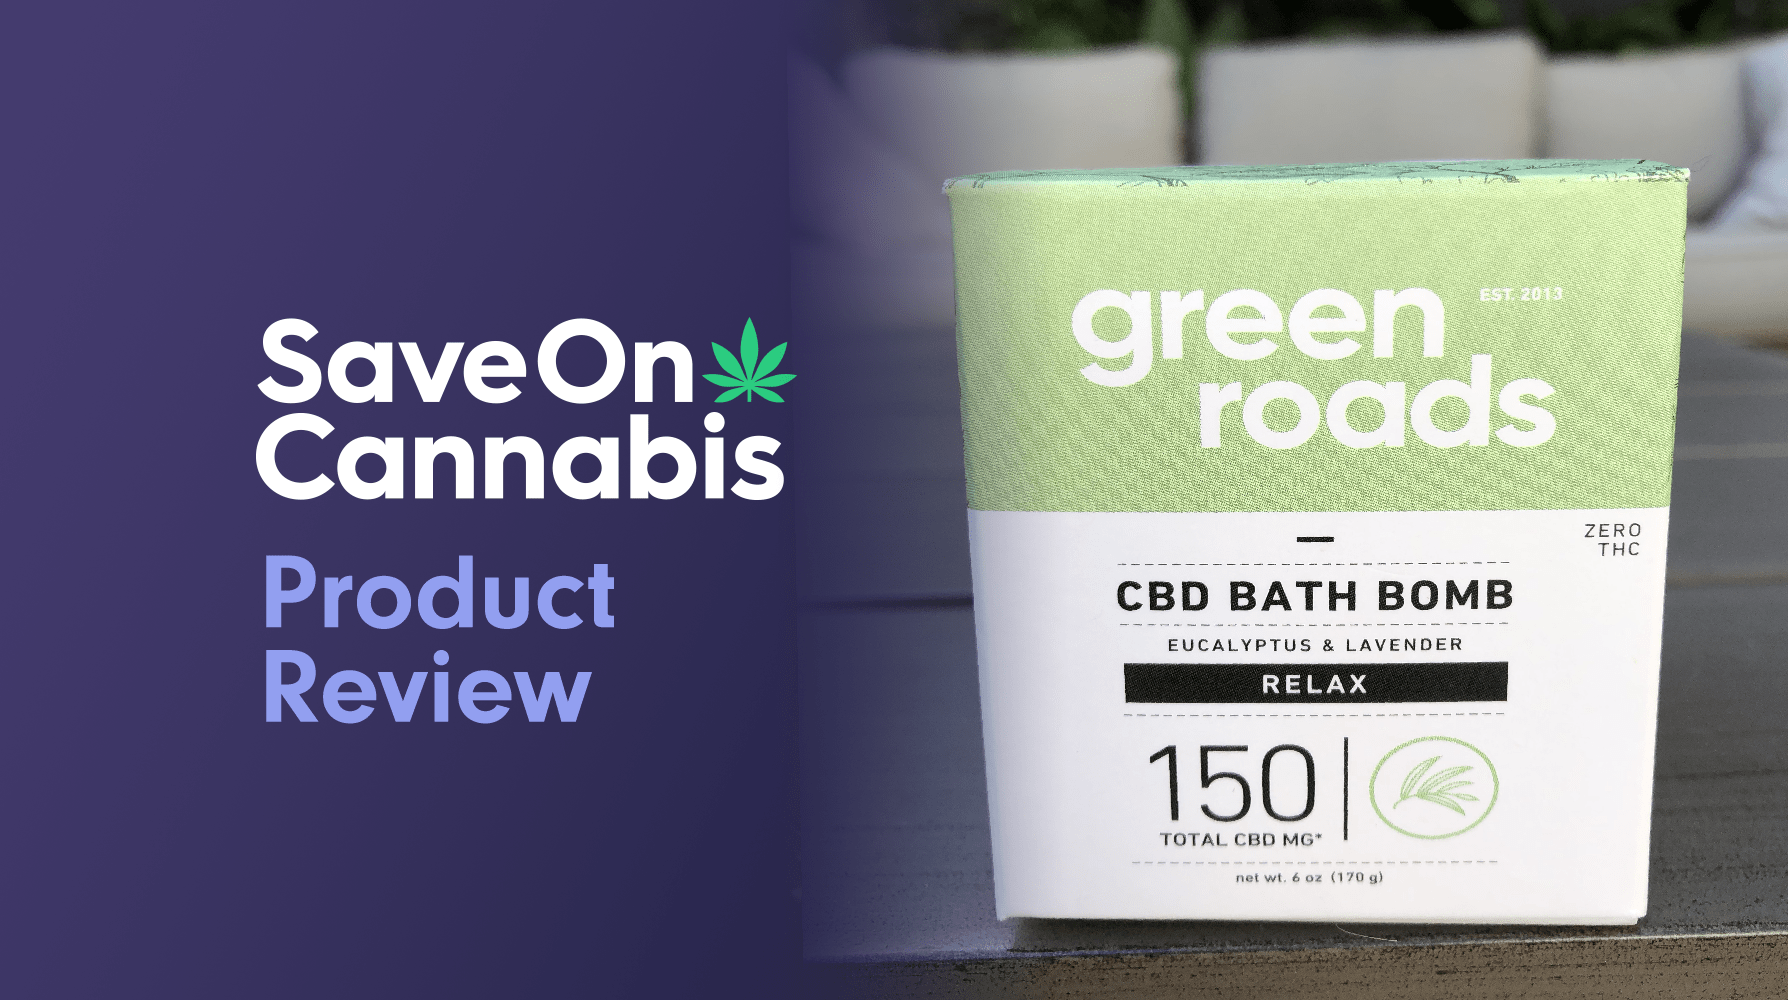 green roads 150 mg relax cbd bath bomb eucalyptus and lavender review save on cannabis website